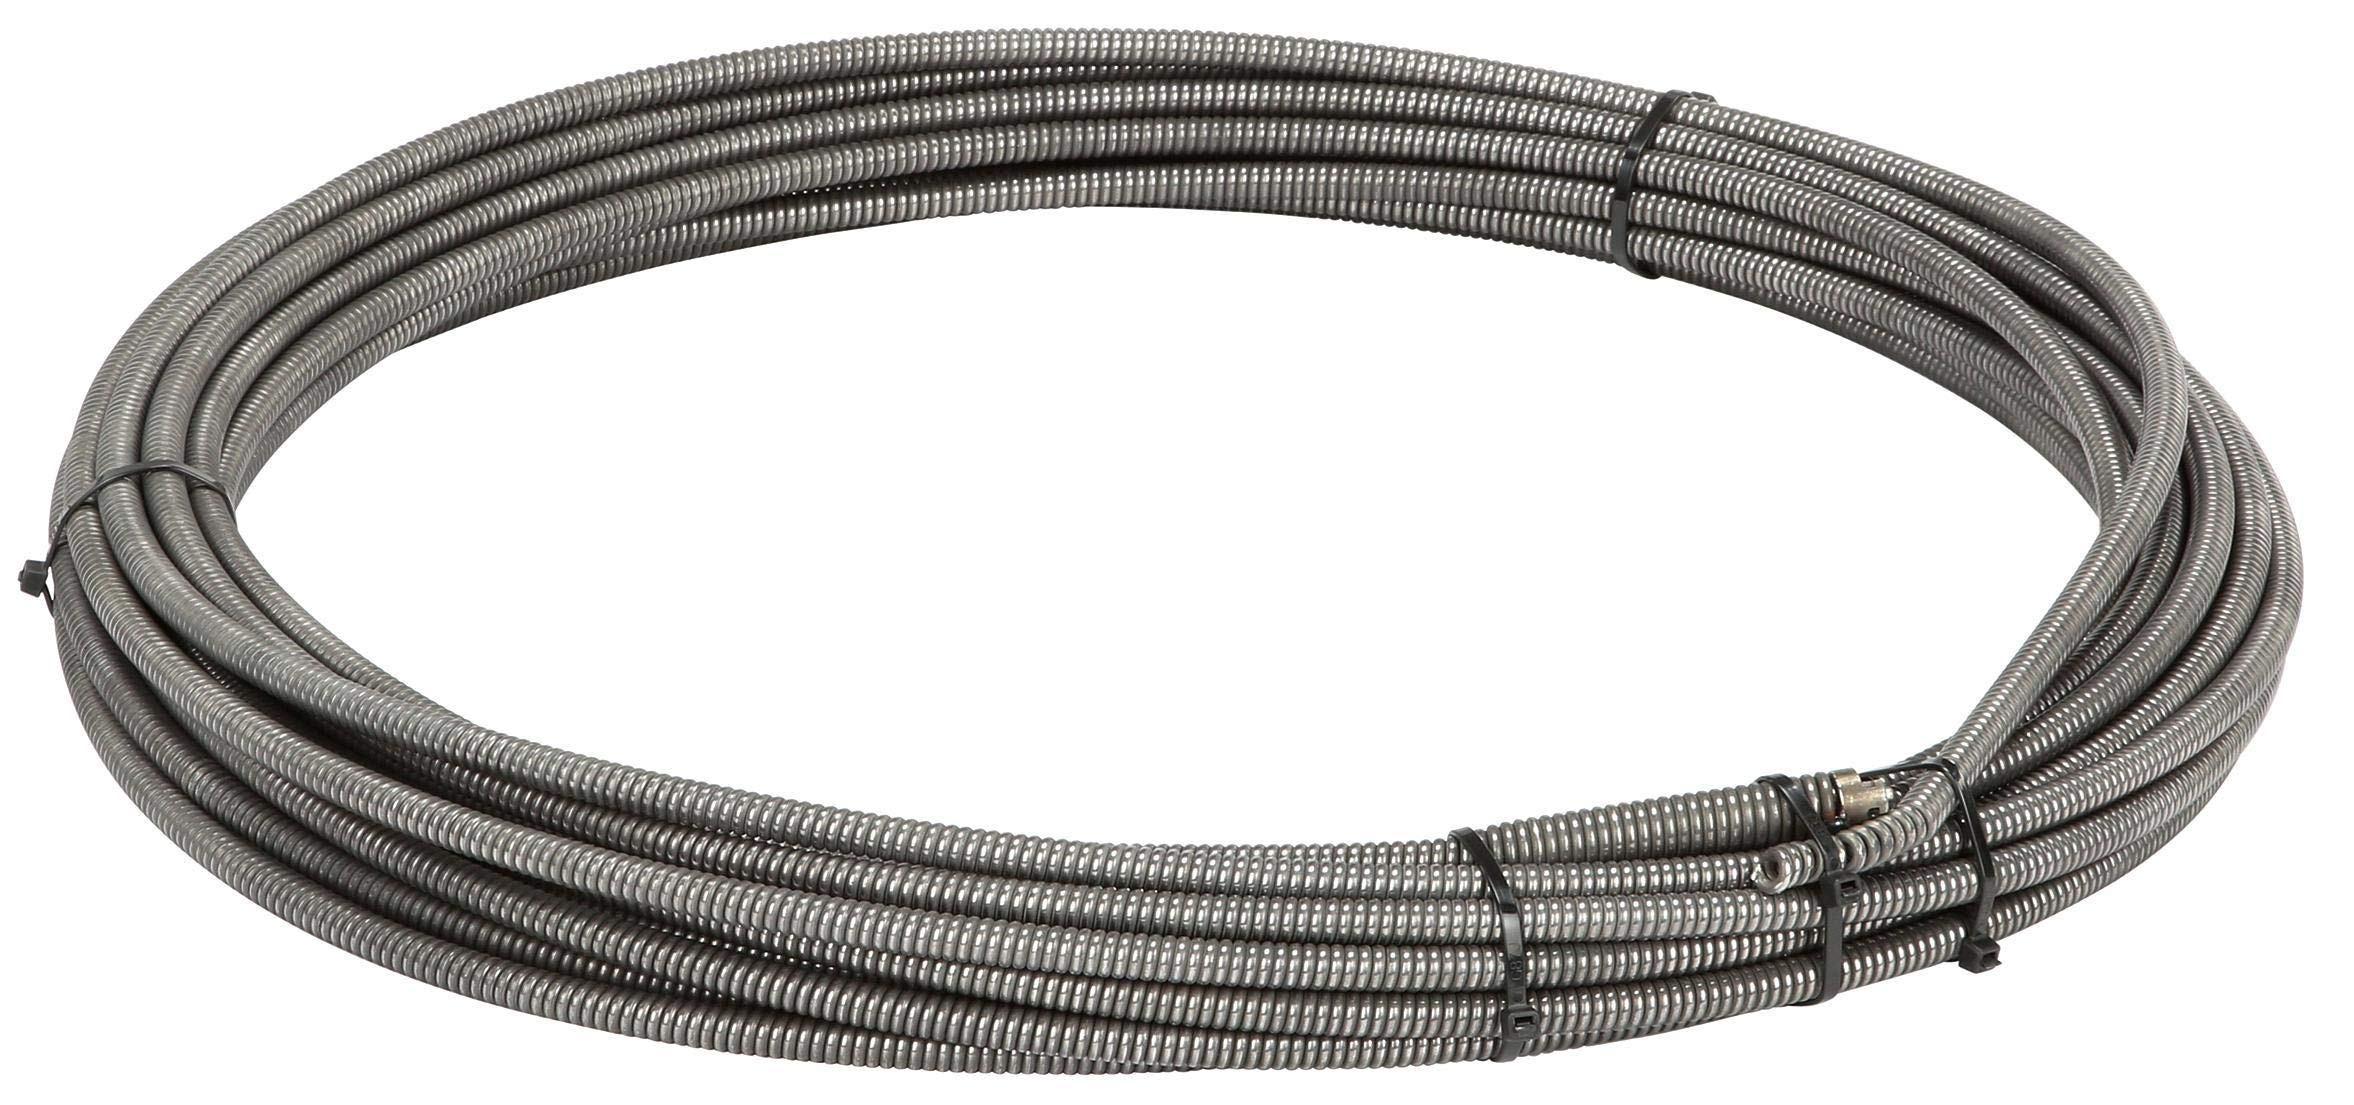 RIDGID 87582 C-32 Integral Wound (IW) Drain Cleaner Cable for Drum Machines such as K-400, K-400AF, and K-3800, 3/8-Inch x 75-Foot Drain Cleaning Cable for Drum Machines by Ridgid (Image #2)